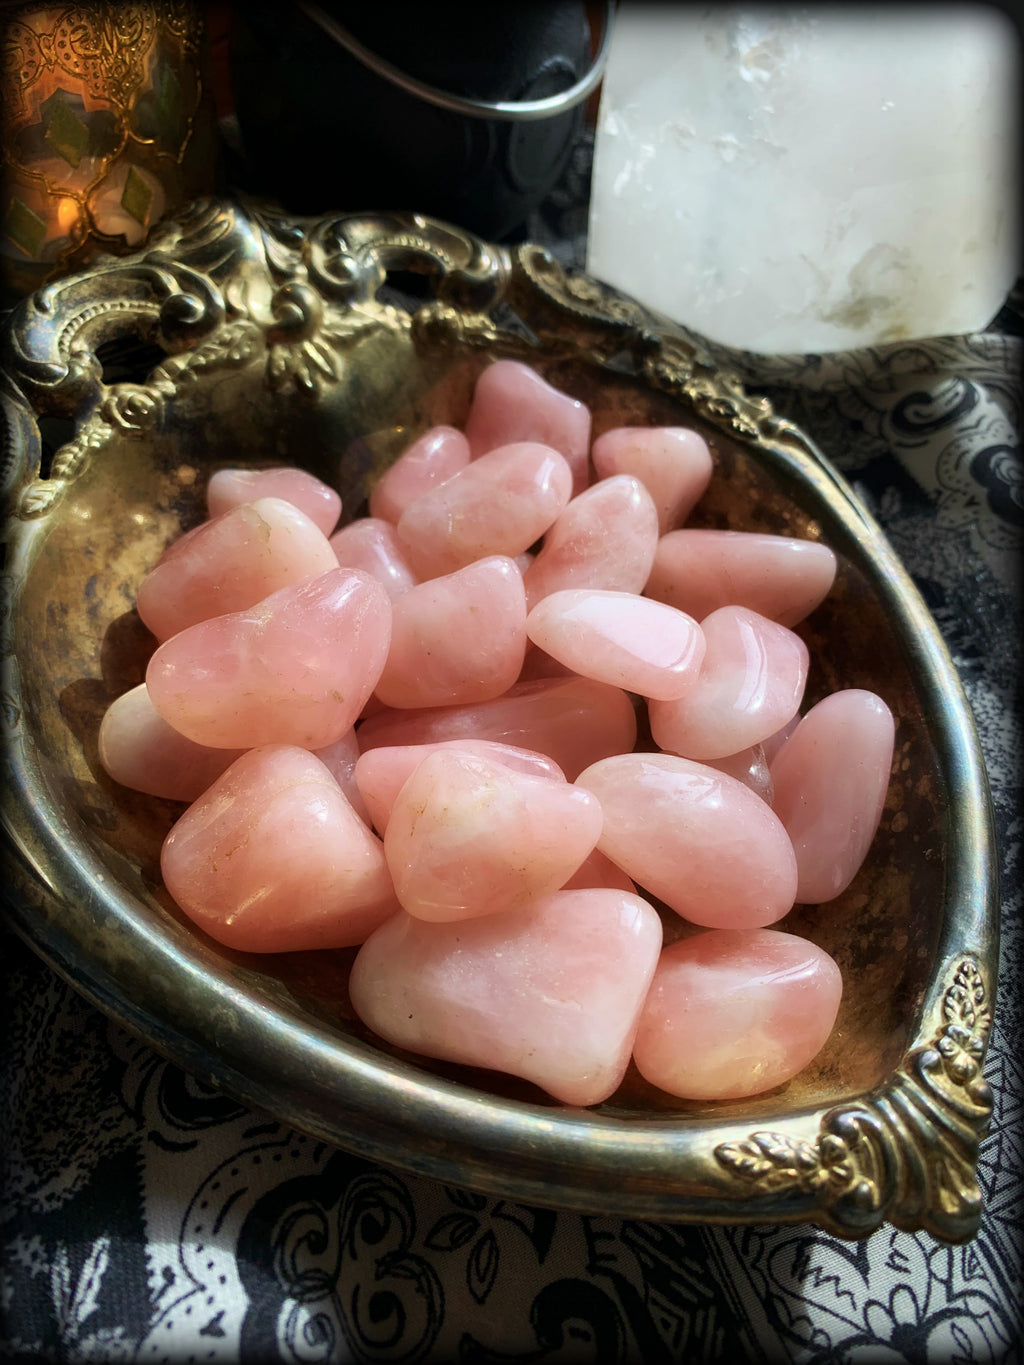 ROSE QUARTZ TUMBLED CRYSTAL ~ For Self Love, Trust, and Harmony